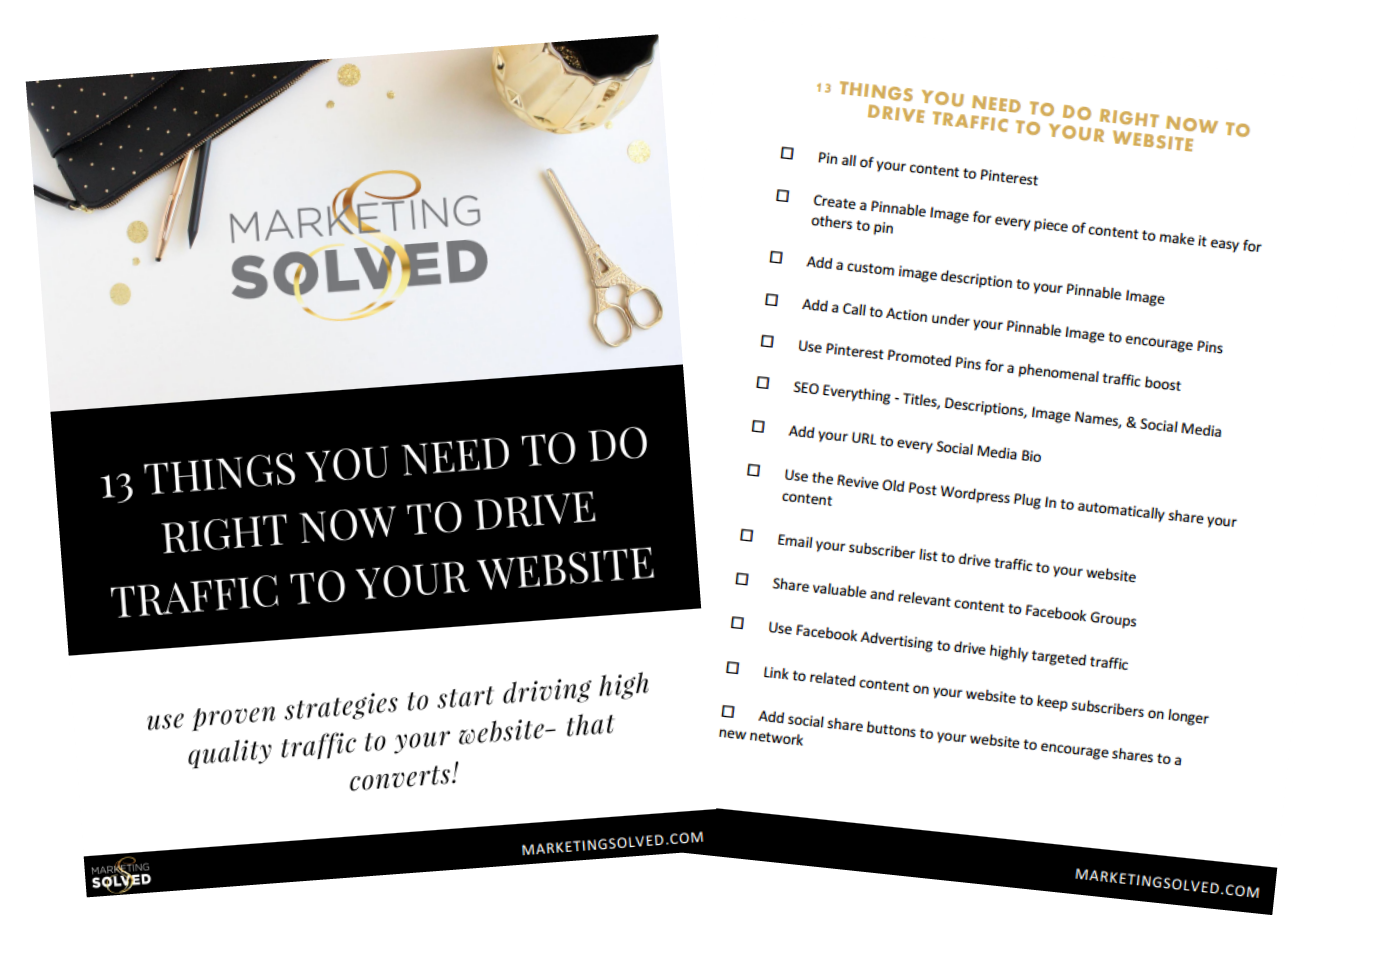 13 Things You Need to Do Right Now to Drive Traffic To Your Website Checklist - Marketing Solved